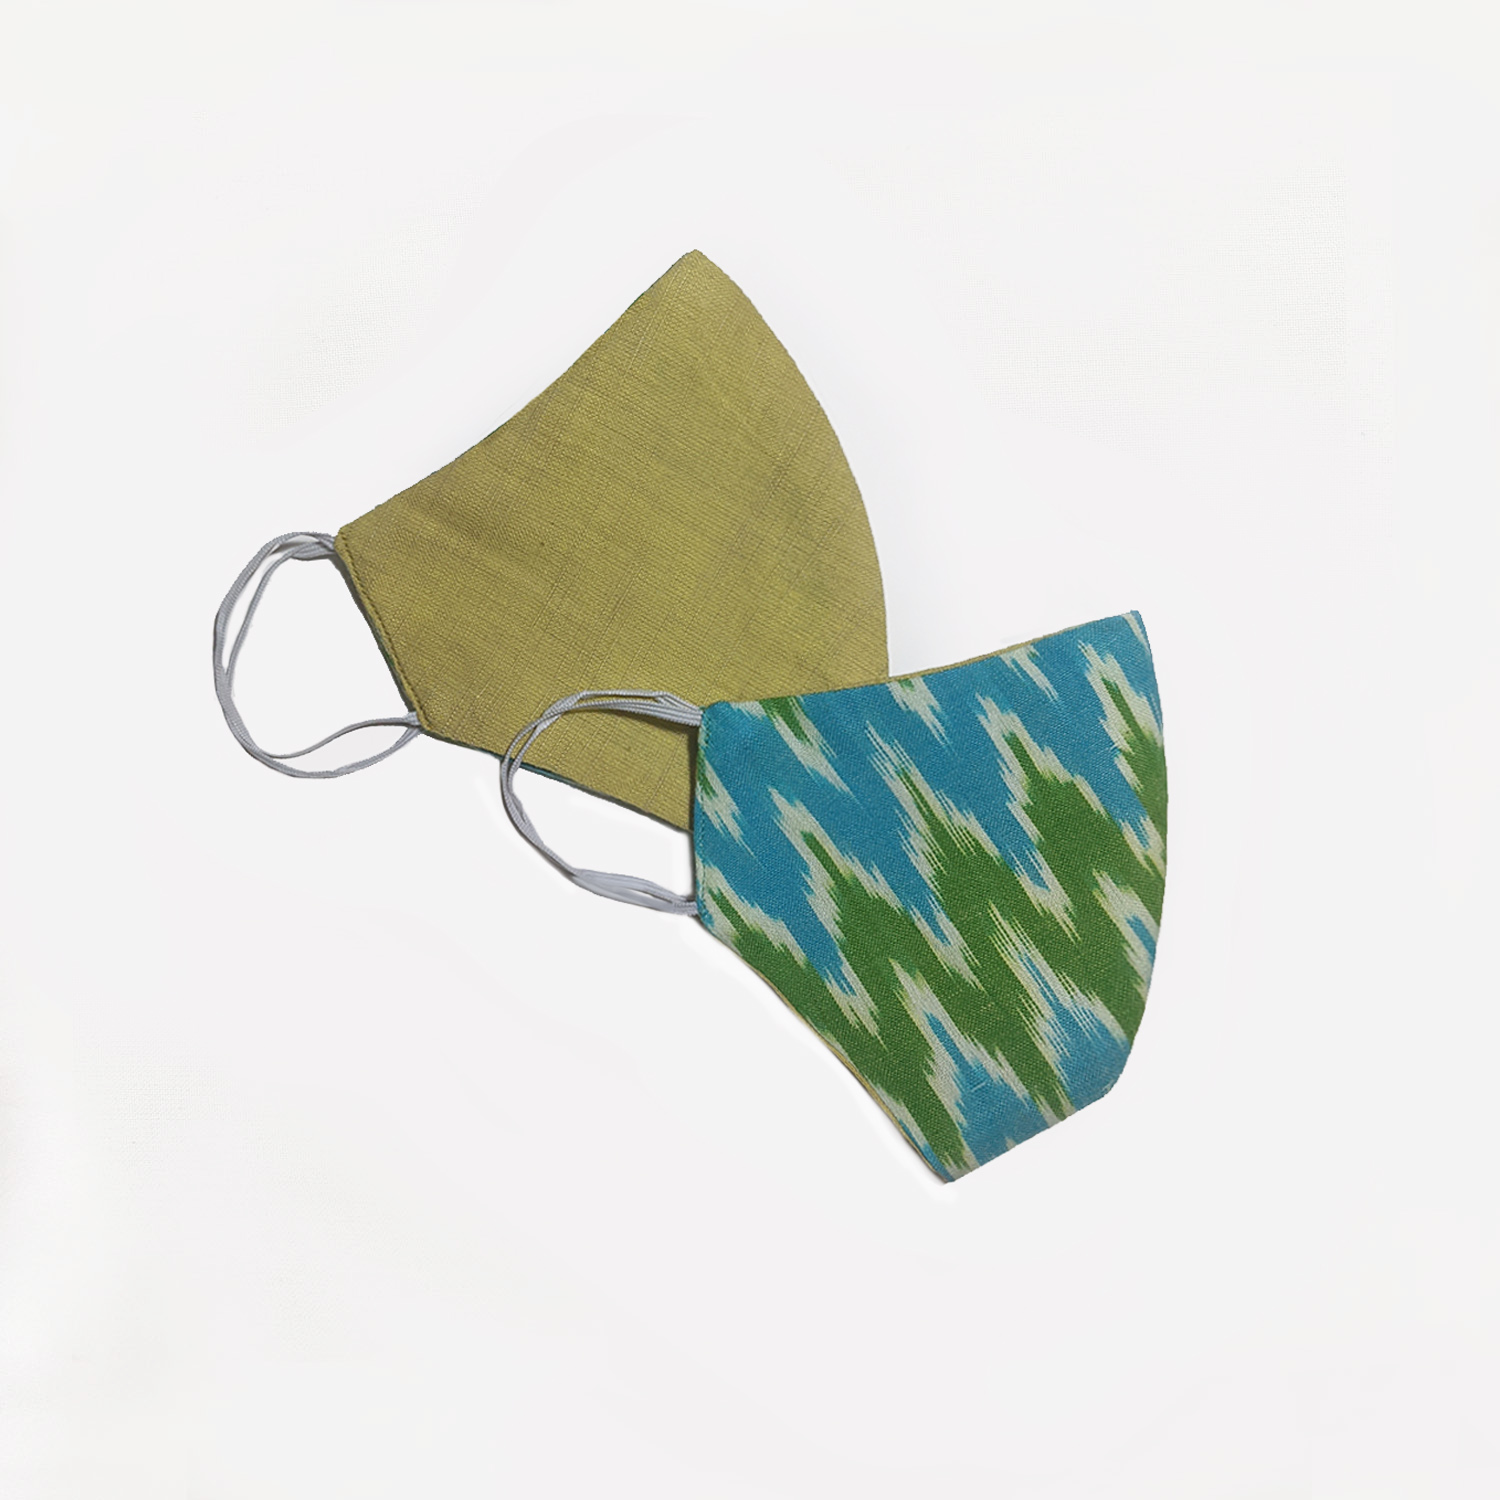 Limited Edition - Butterscotch Yellow and Blue Ikat Reversible Face Mask (Set of 2)